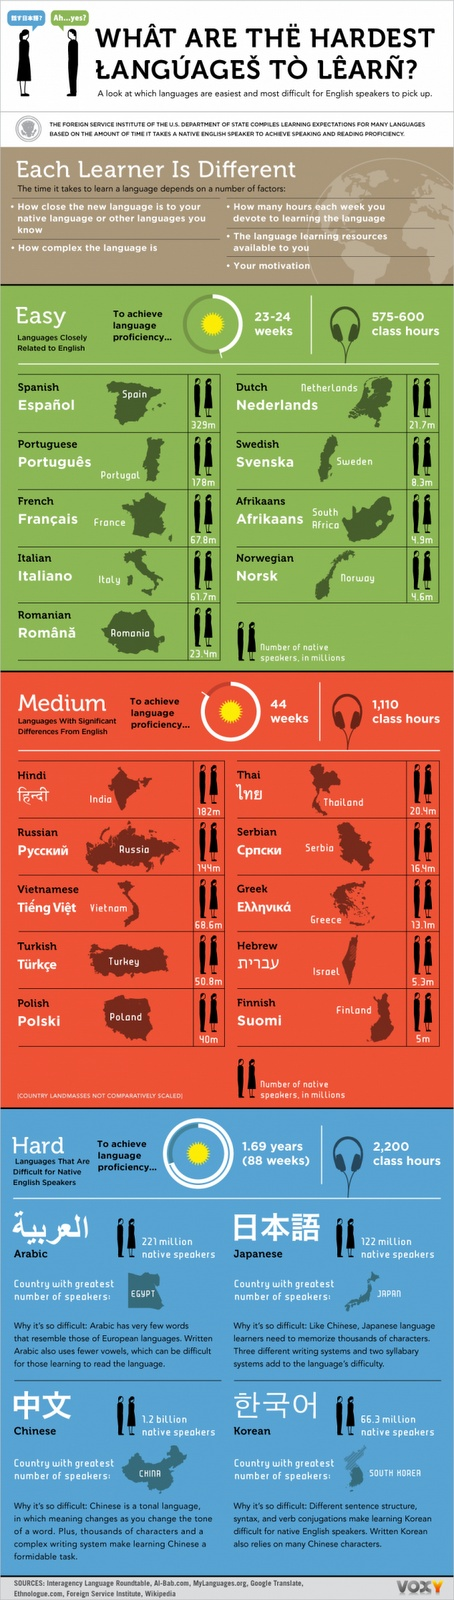 Relative language learning infographic. Where's Esperanto?